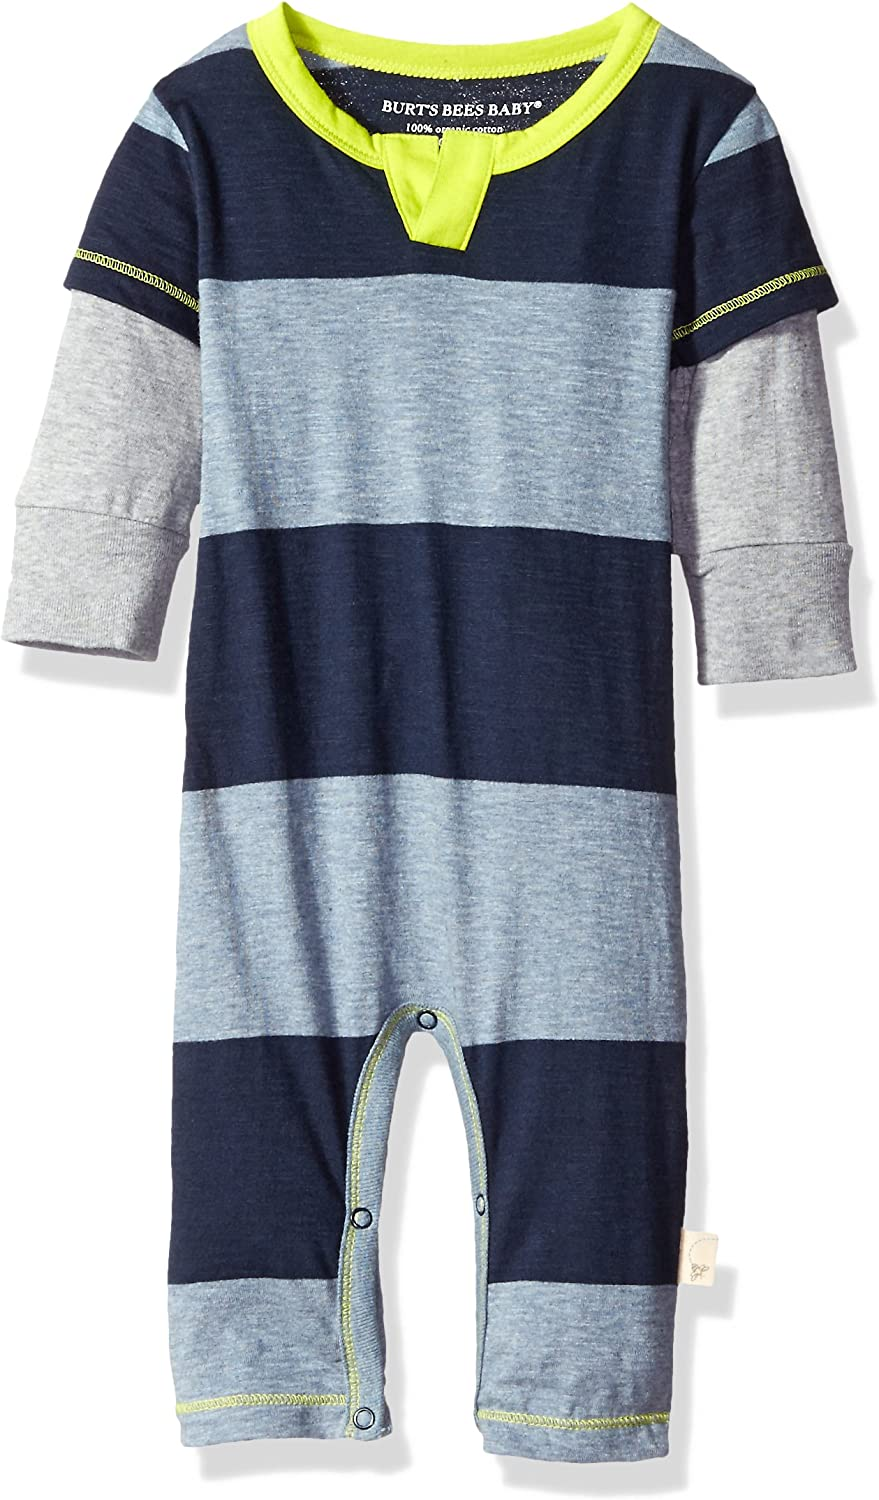 Solid Color Coverall /& Hat Set Burts Bees Baby Baby Boys Organic One-Piece Romper Coverall